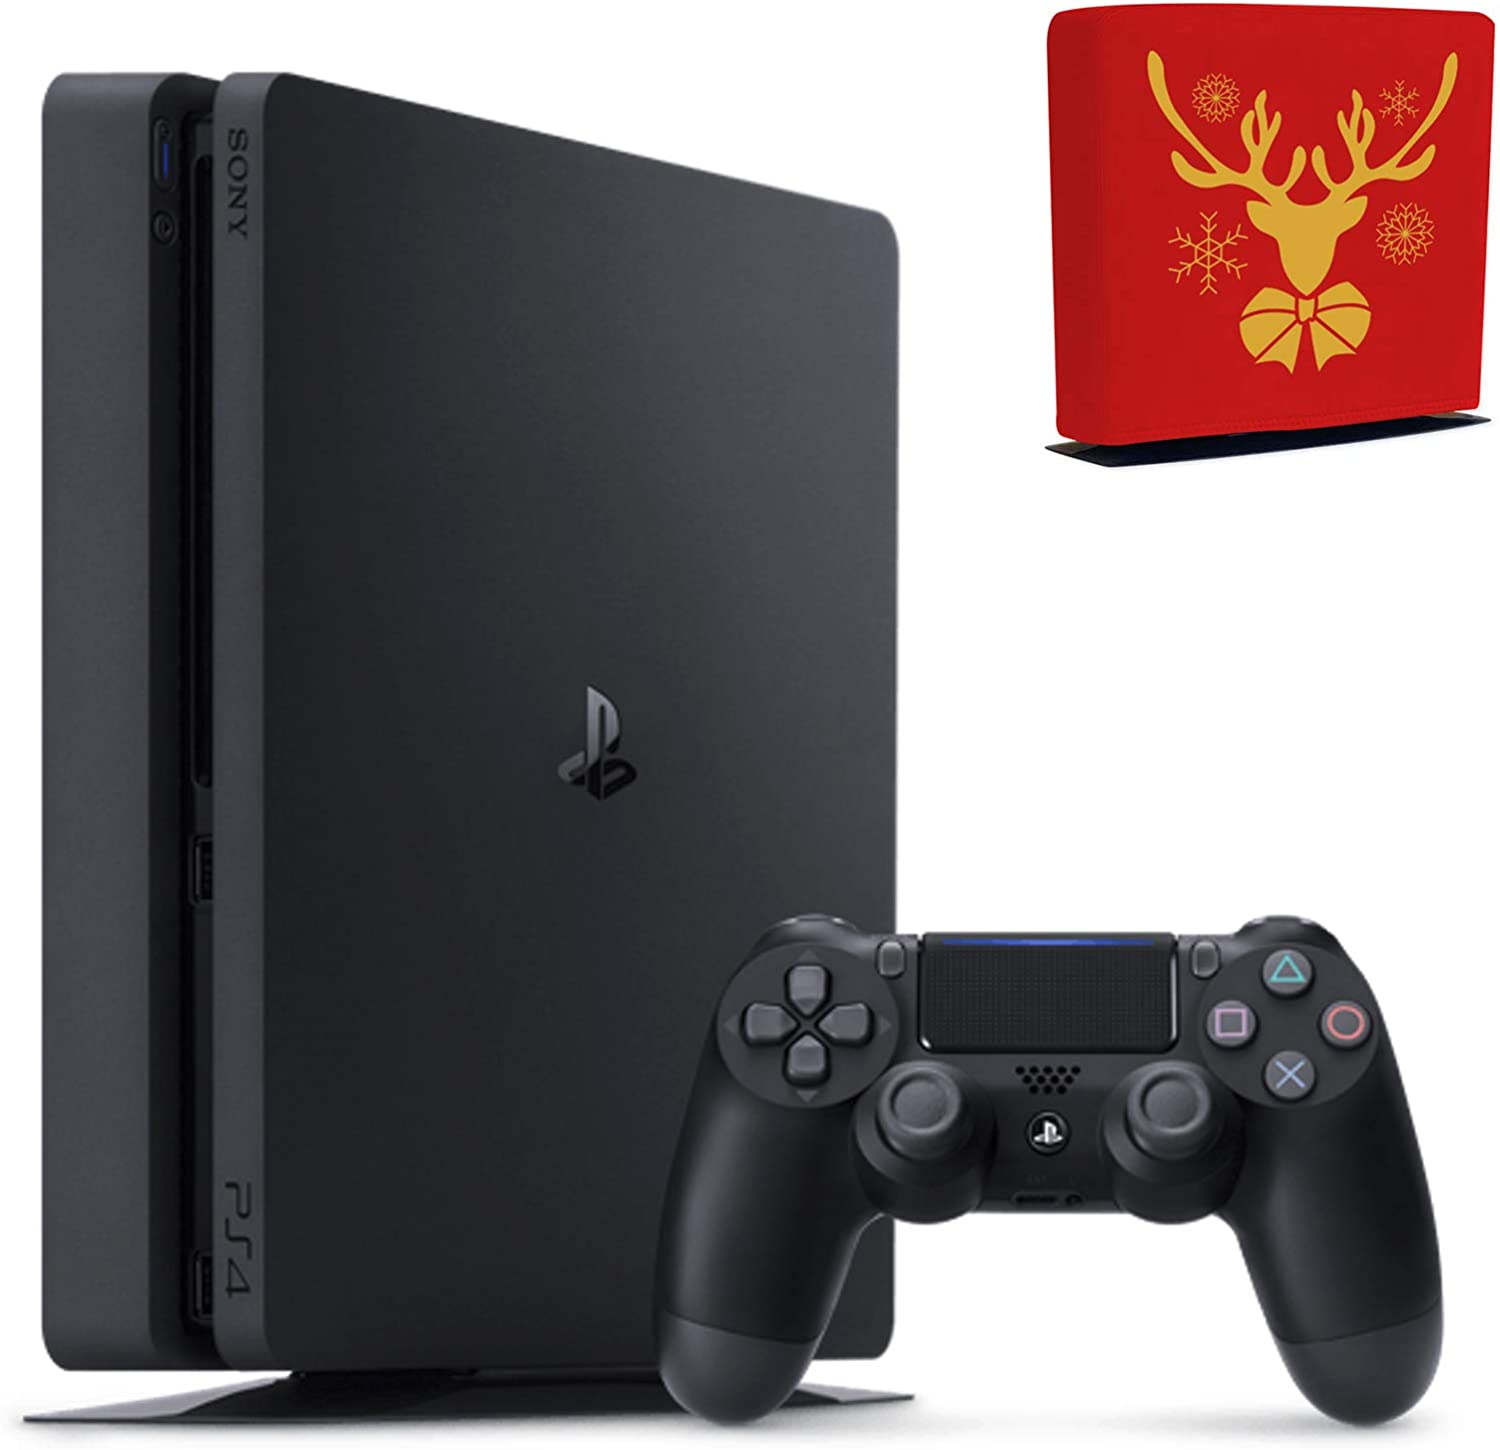 Sony Console Playstation 4-2TB Slim Edition Jet Black - PS4 with 1 DualShock Wireless Controller - Family Holiday Gaming Bundle - iPuzzle Red Reindeer Dust Cover for PS4